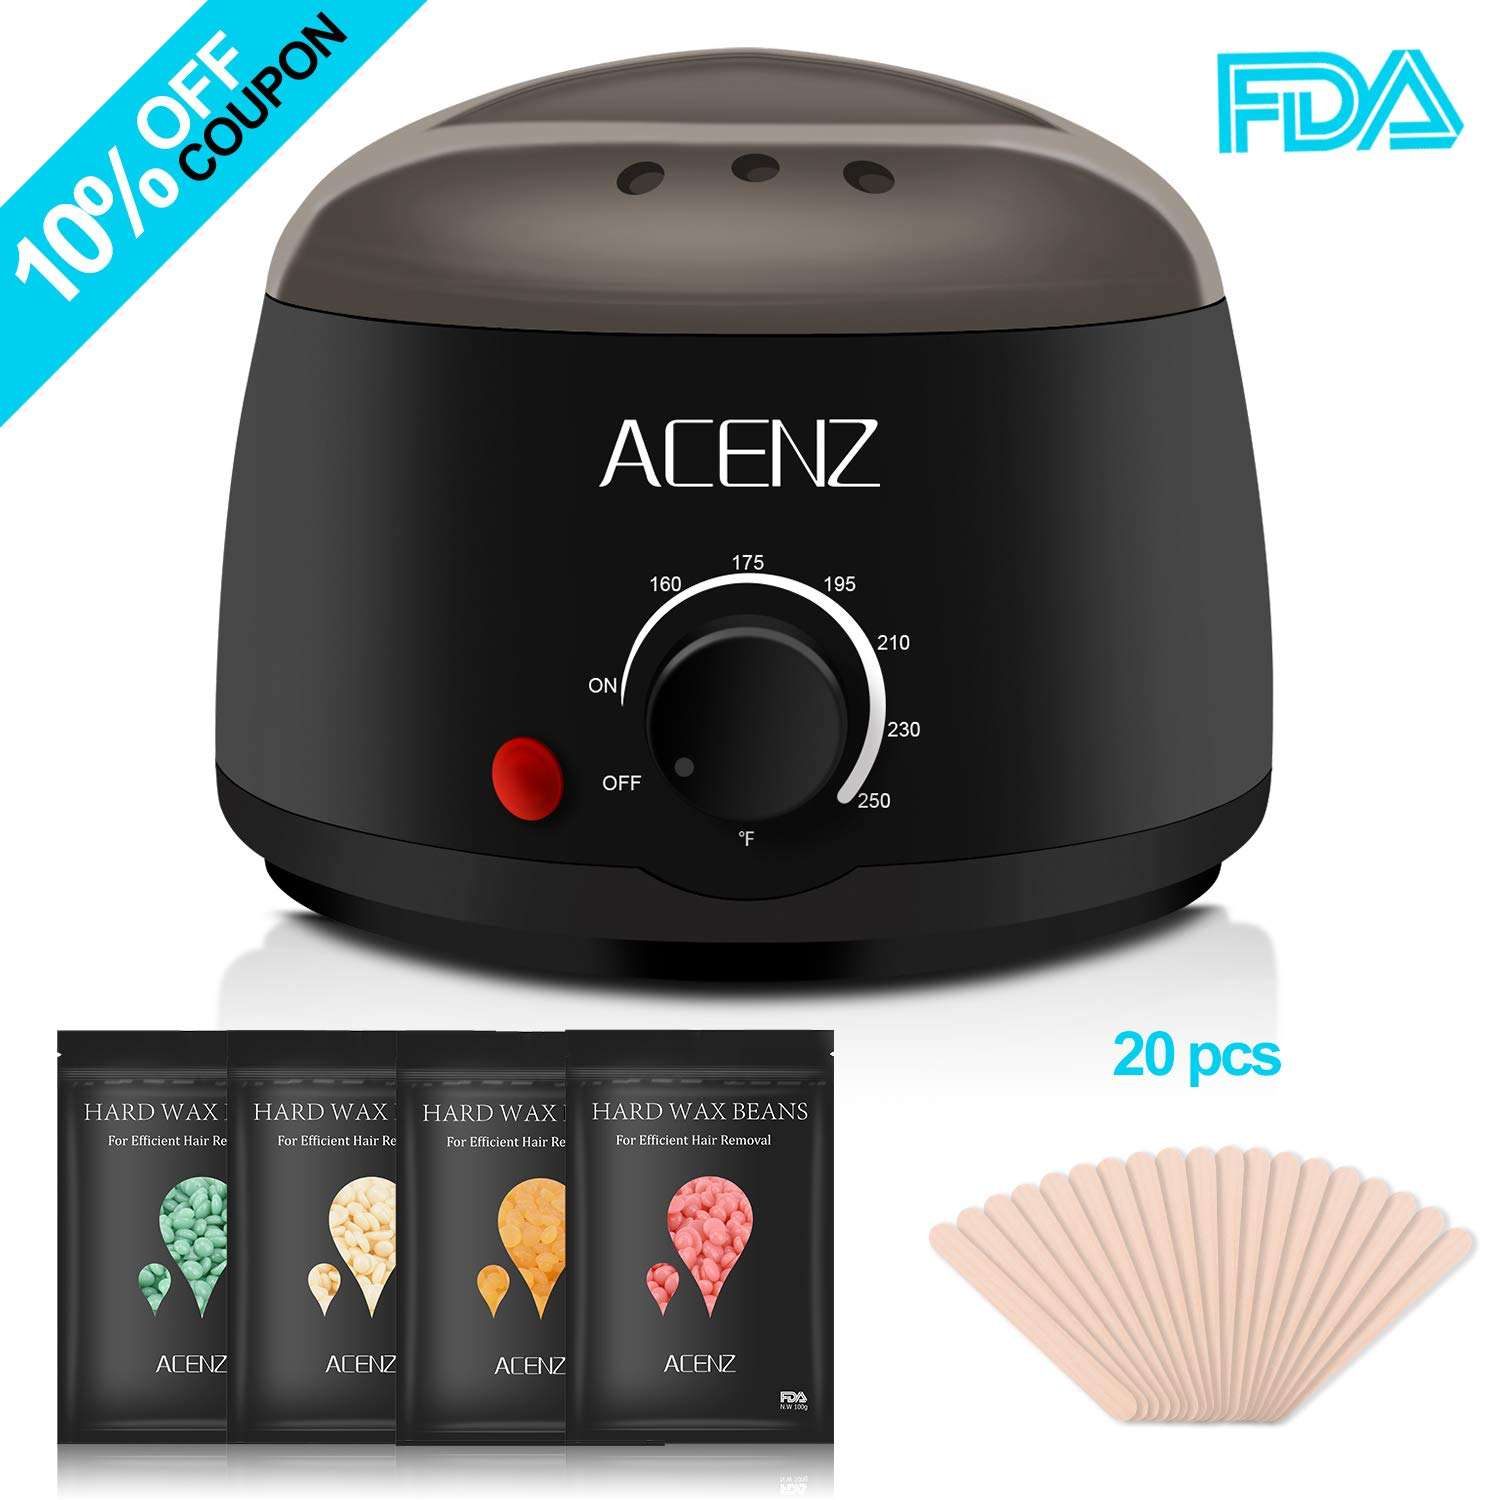 Waxing Kit, ACENZ Wax Warmer for Hair Removal, Hard Wax Kit for At Home Waxing with 4 Flavors Hard Wax Beans and 20 Wax Applicator Spatulas (Upgraded Version)